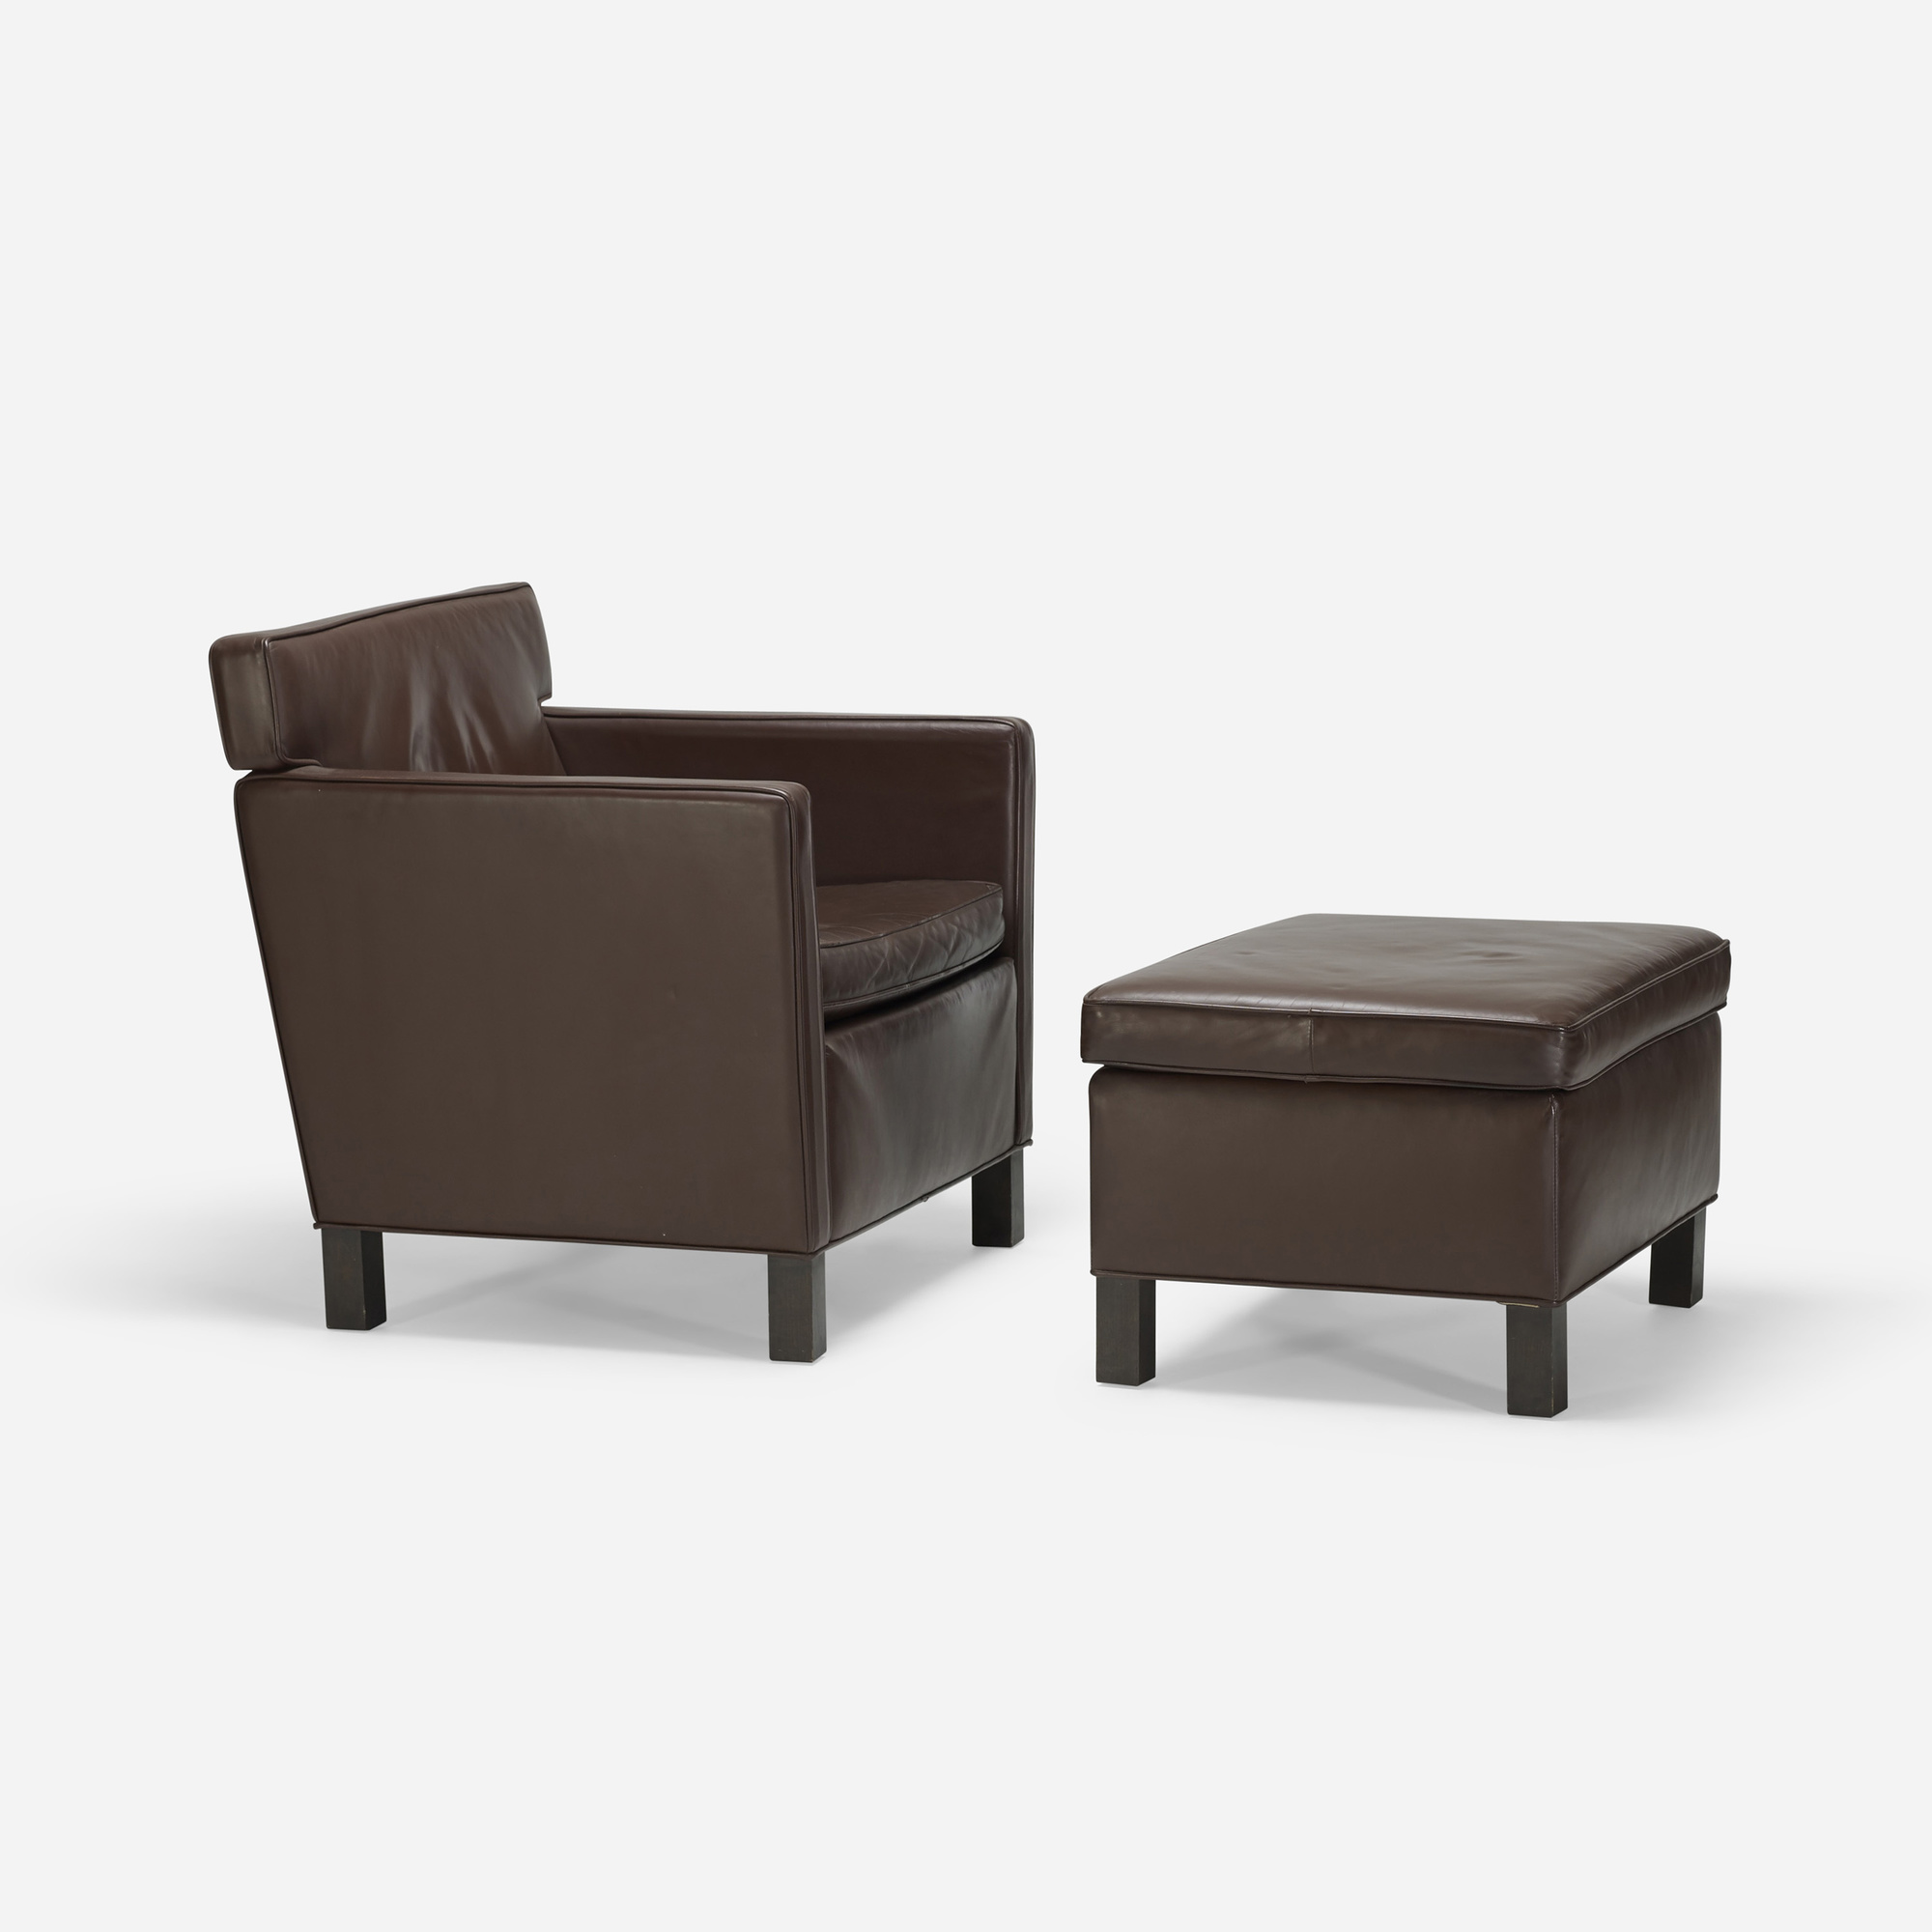 480 ludwig mies van der rohe krefeld lounge chair and ottoman. Black Bedroom Furniture Sets. Home Design Ideas